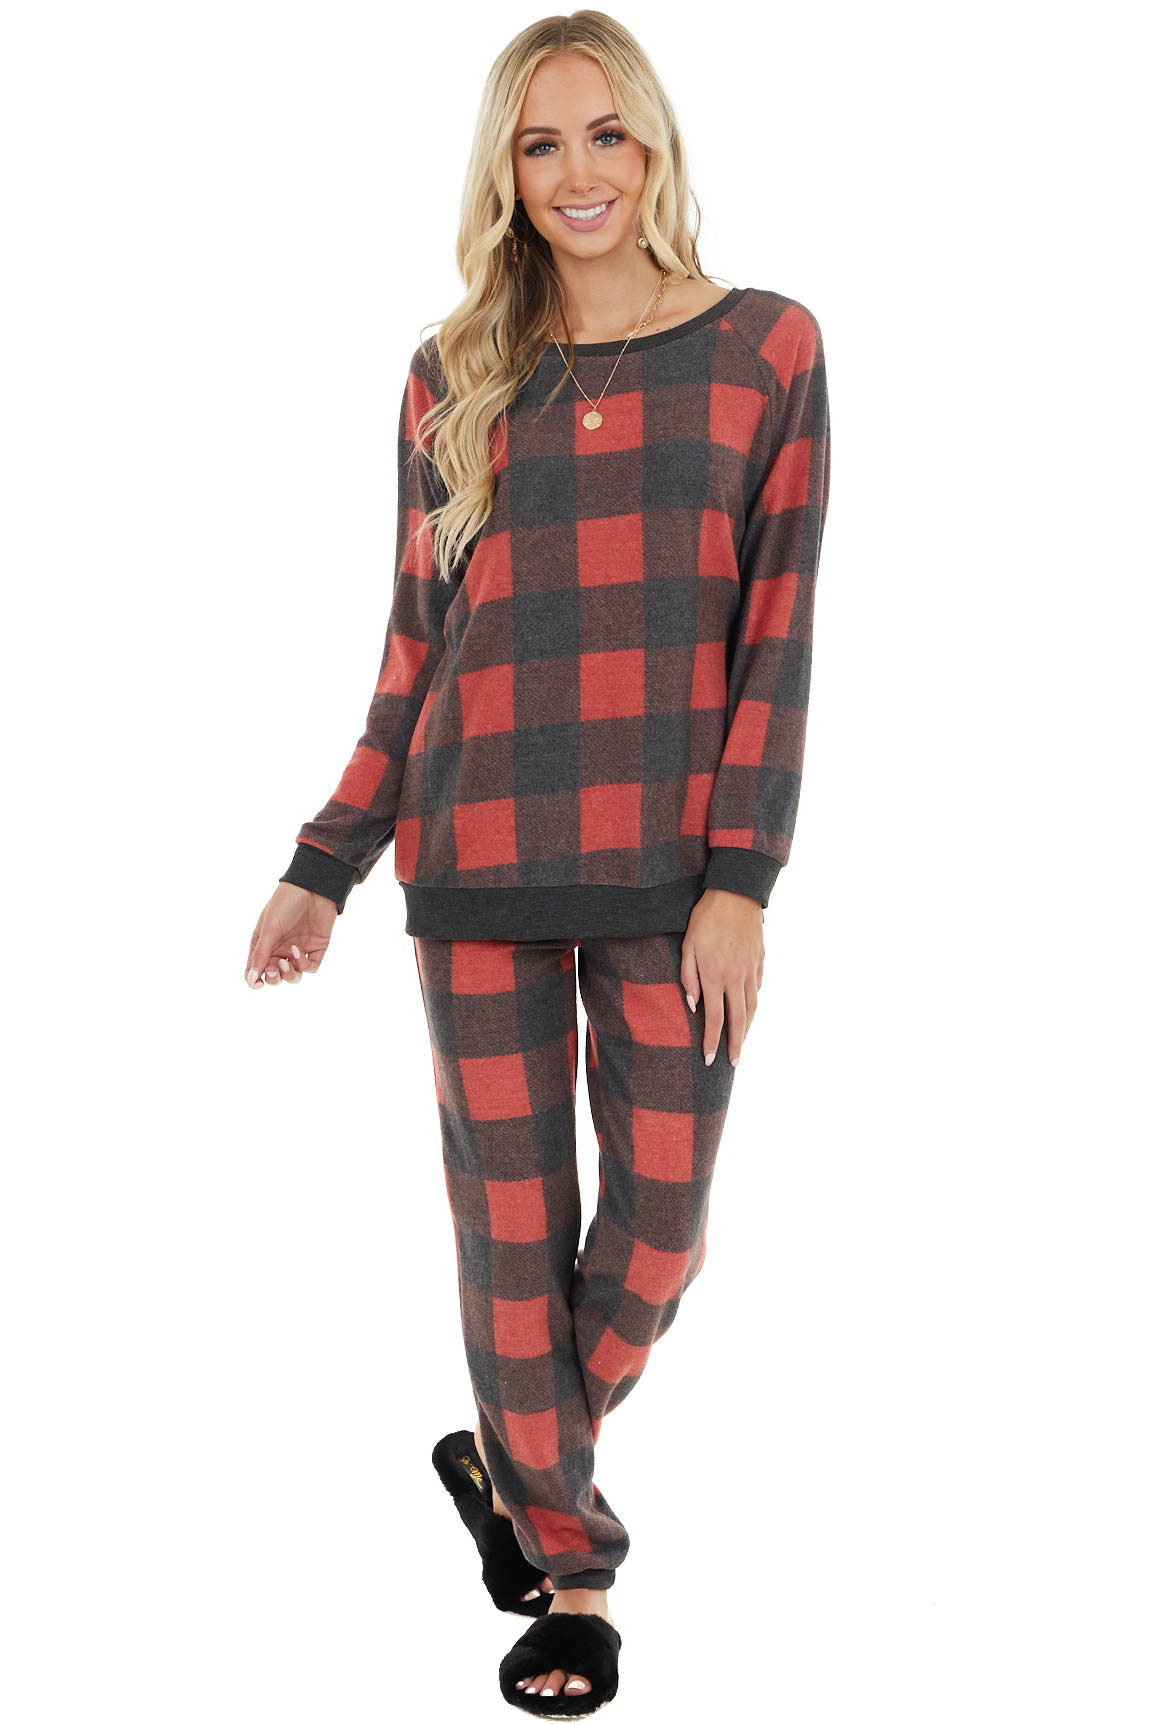 Candy Apple Red Buffalo Plaid Long Sleeve Top and Jogger Set